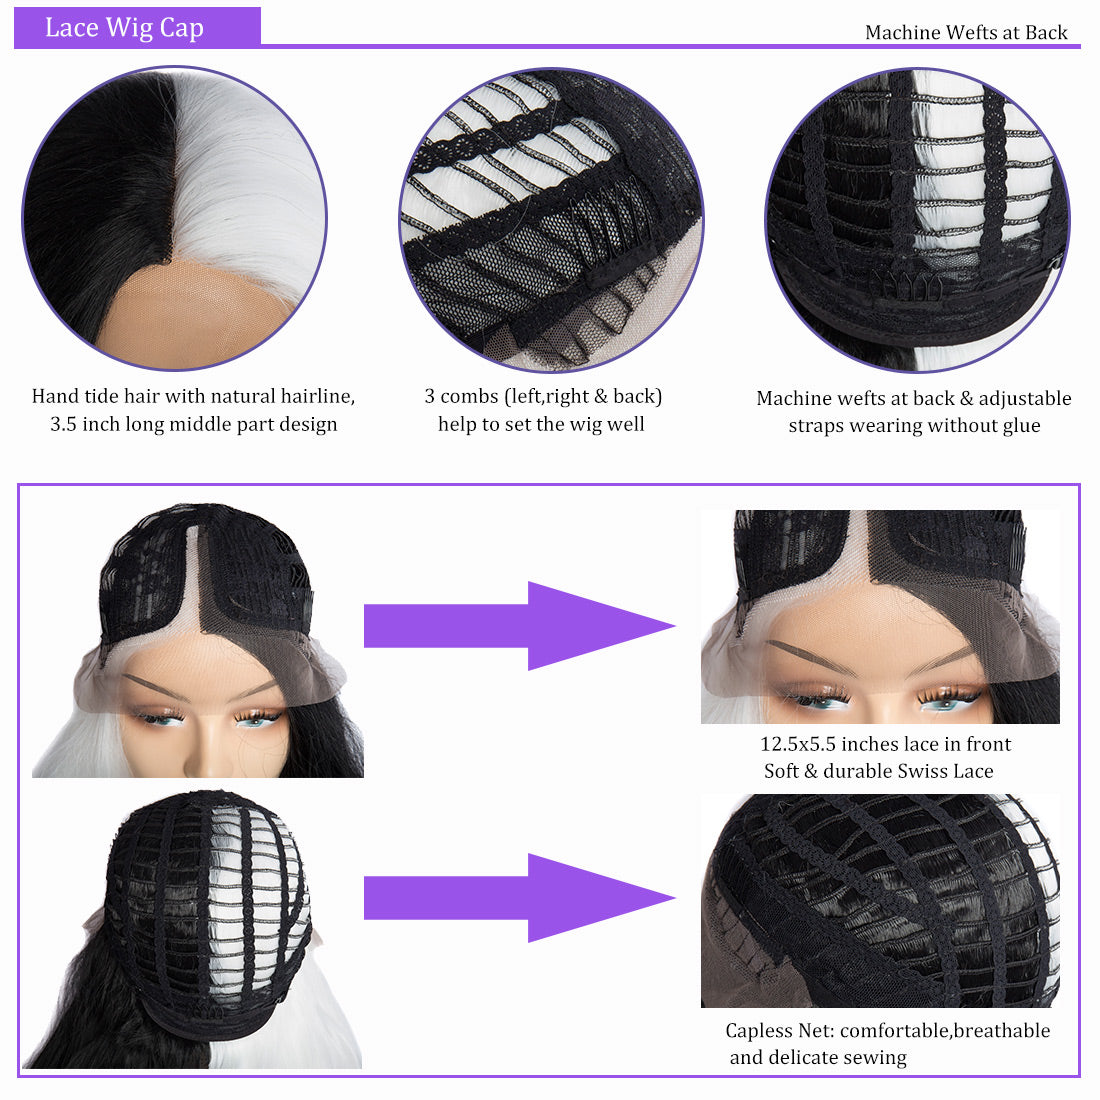 Synthetic Lace Wigs black and white color body wave wigs cap details show in description